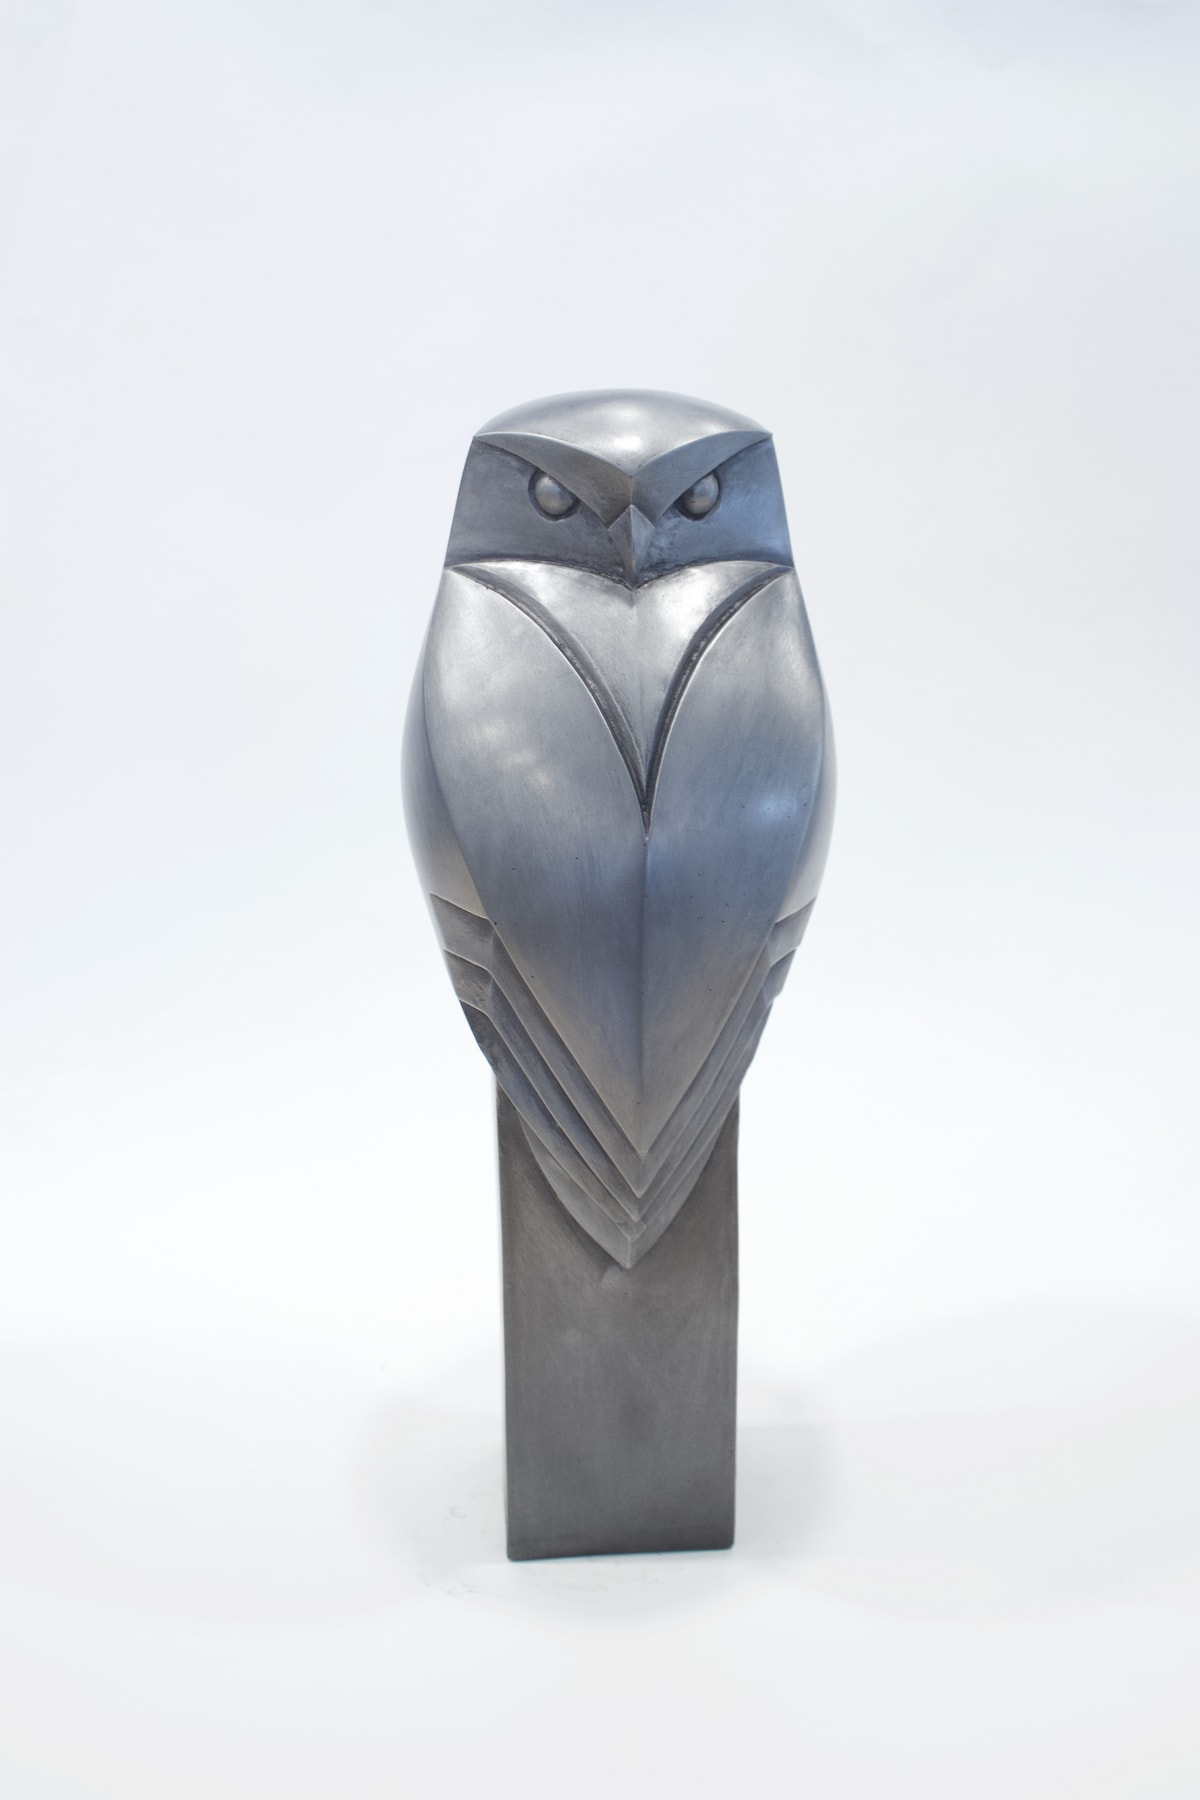 Paul Harvey Little Owl, 2019 Mixed Media Sculpture Cold Cast Pewter Resin 34 x 12 x 12 cm 13 3/8 x 4 3/4 x 4 3/4 in Open Edition